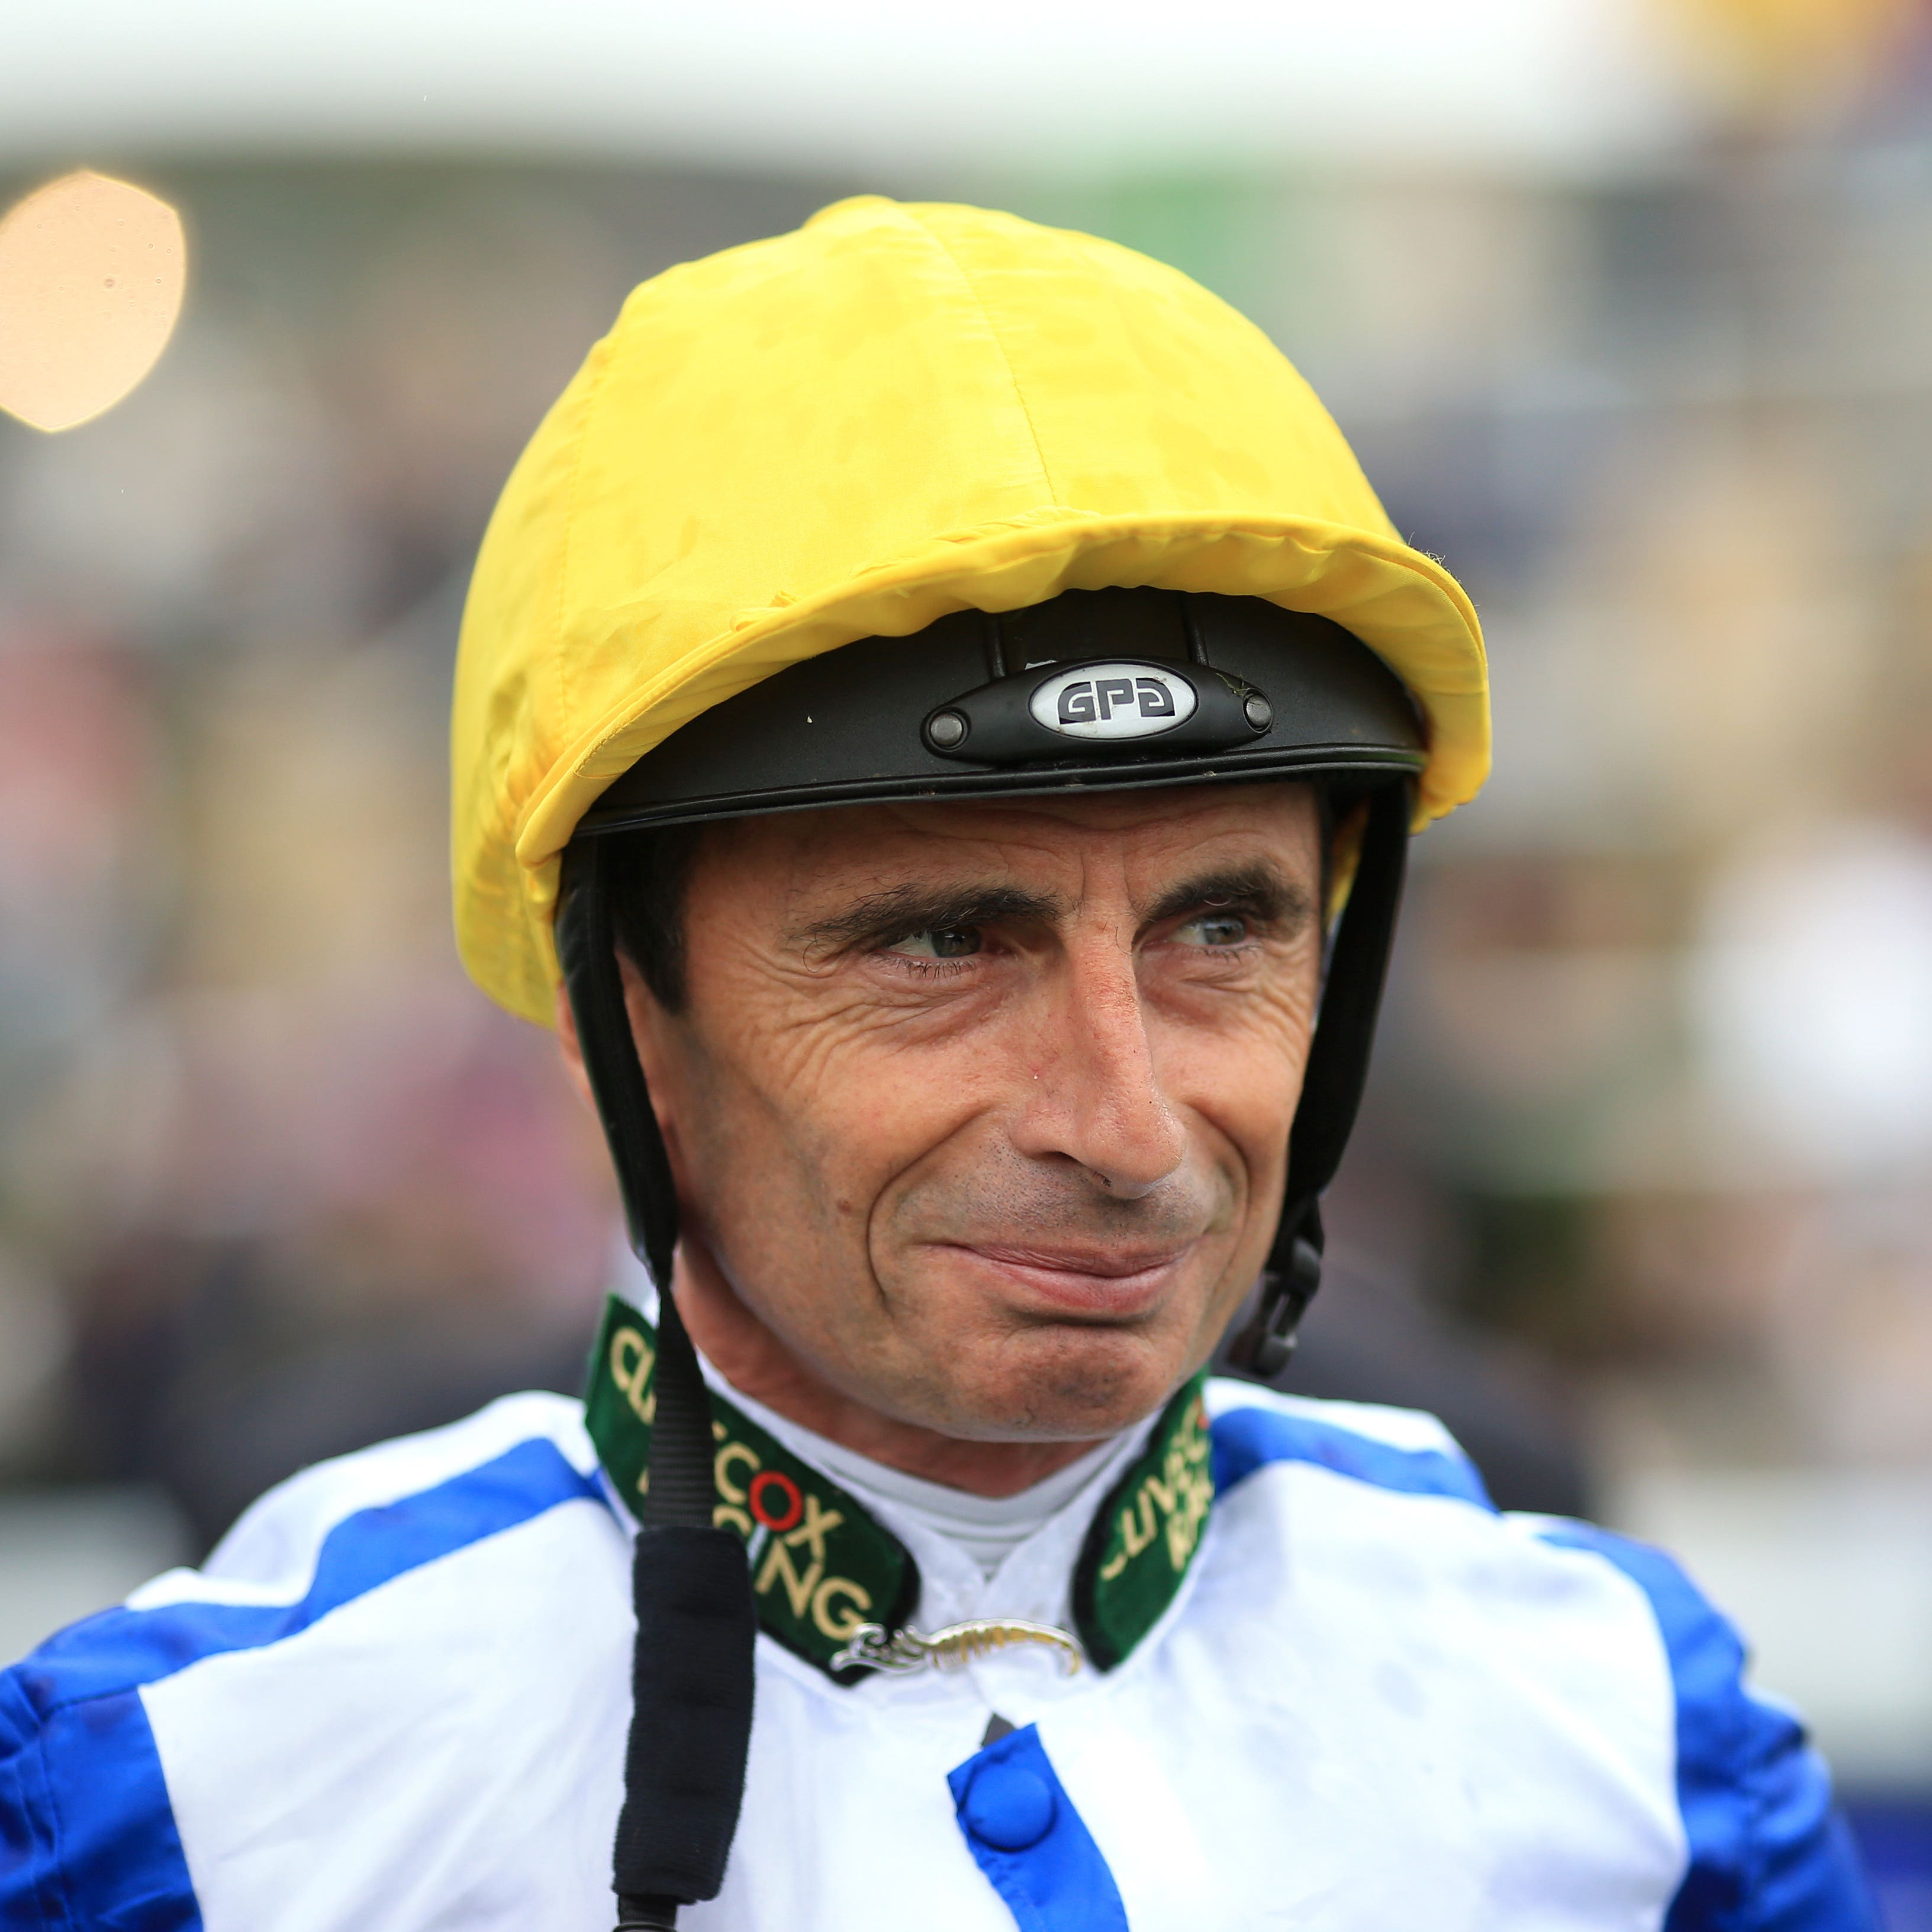 Gerald Mosse has confirmed he will be based in Britain next season